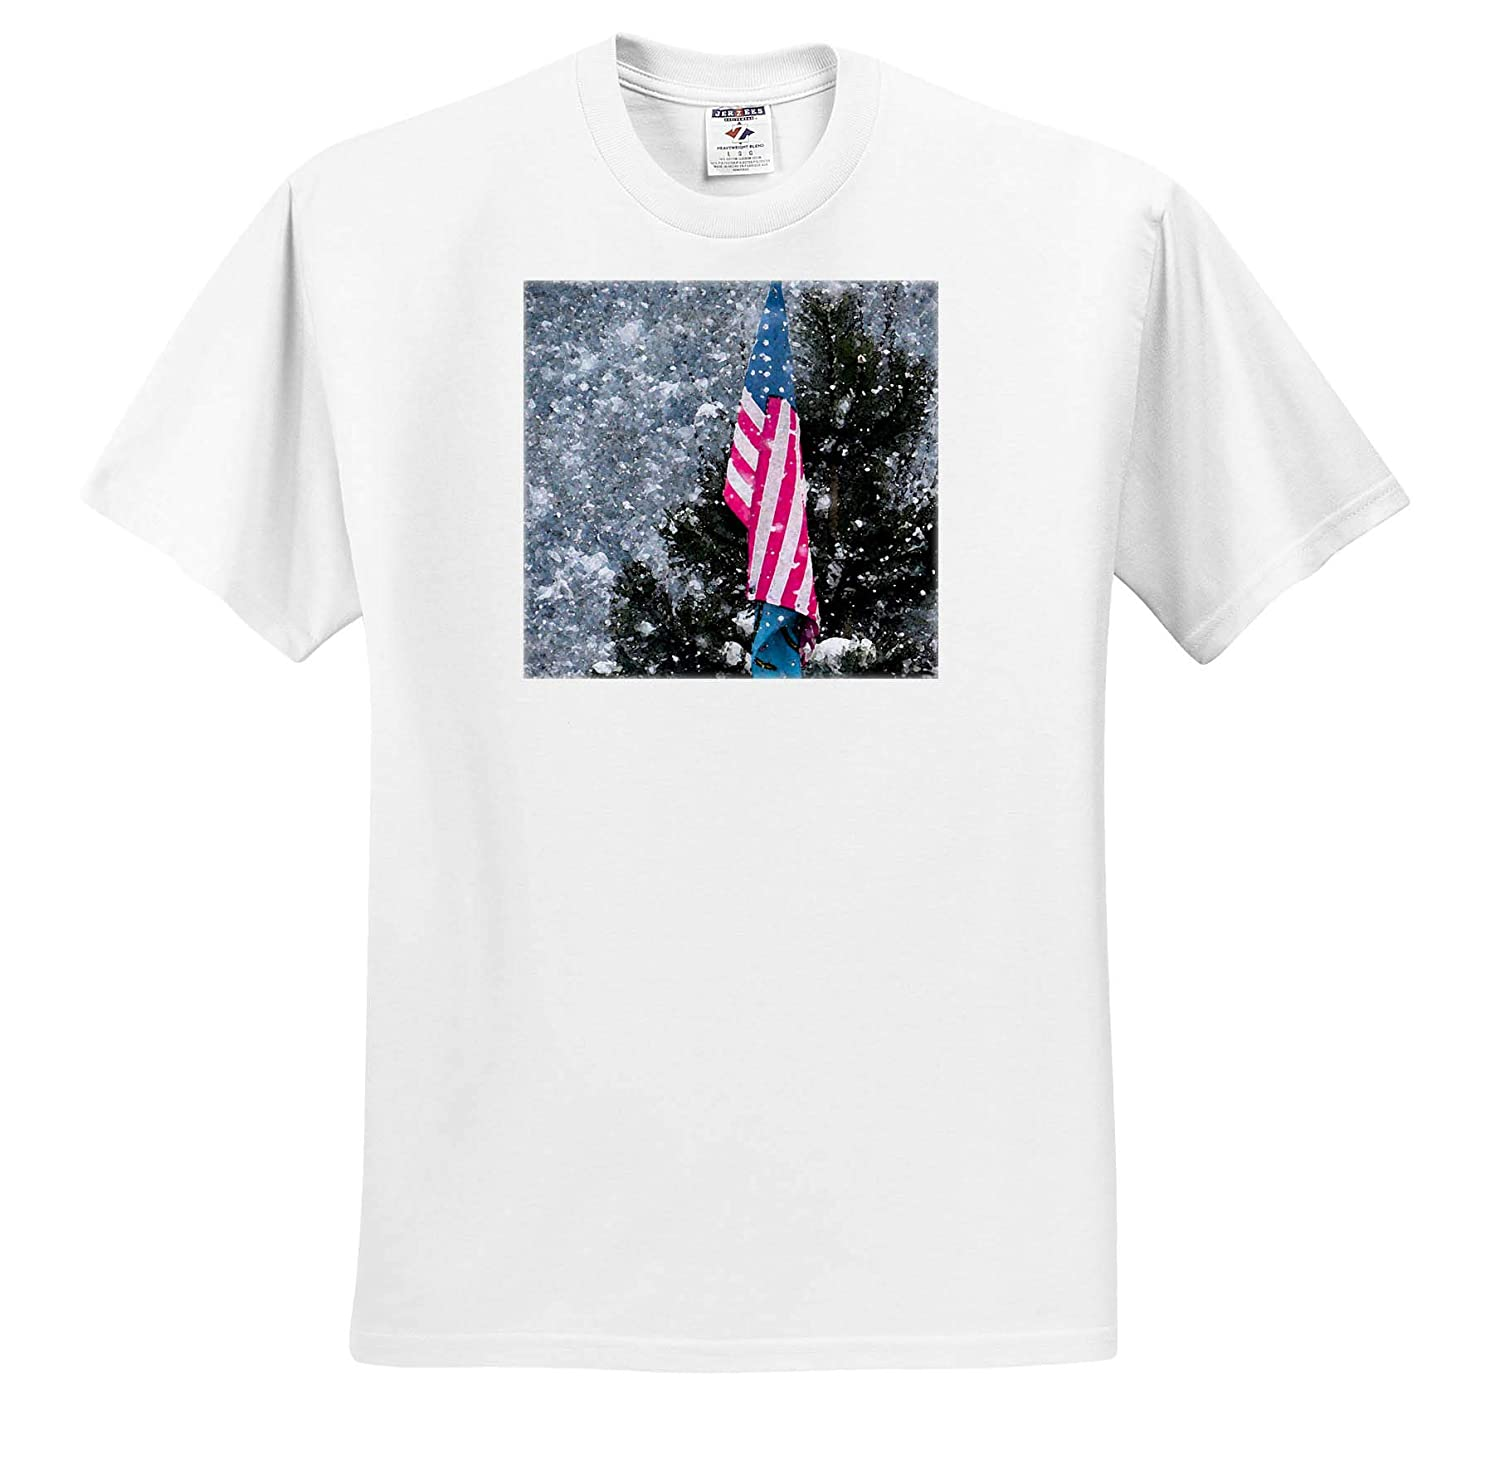 3dRose Jos Fauxtographee Winter Flag T-Shirts A Winter Scene of an American Flag with Snow Flakes Falling